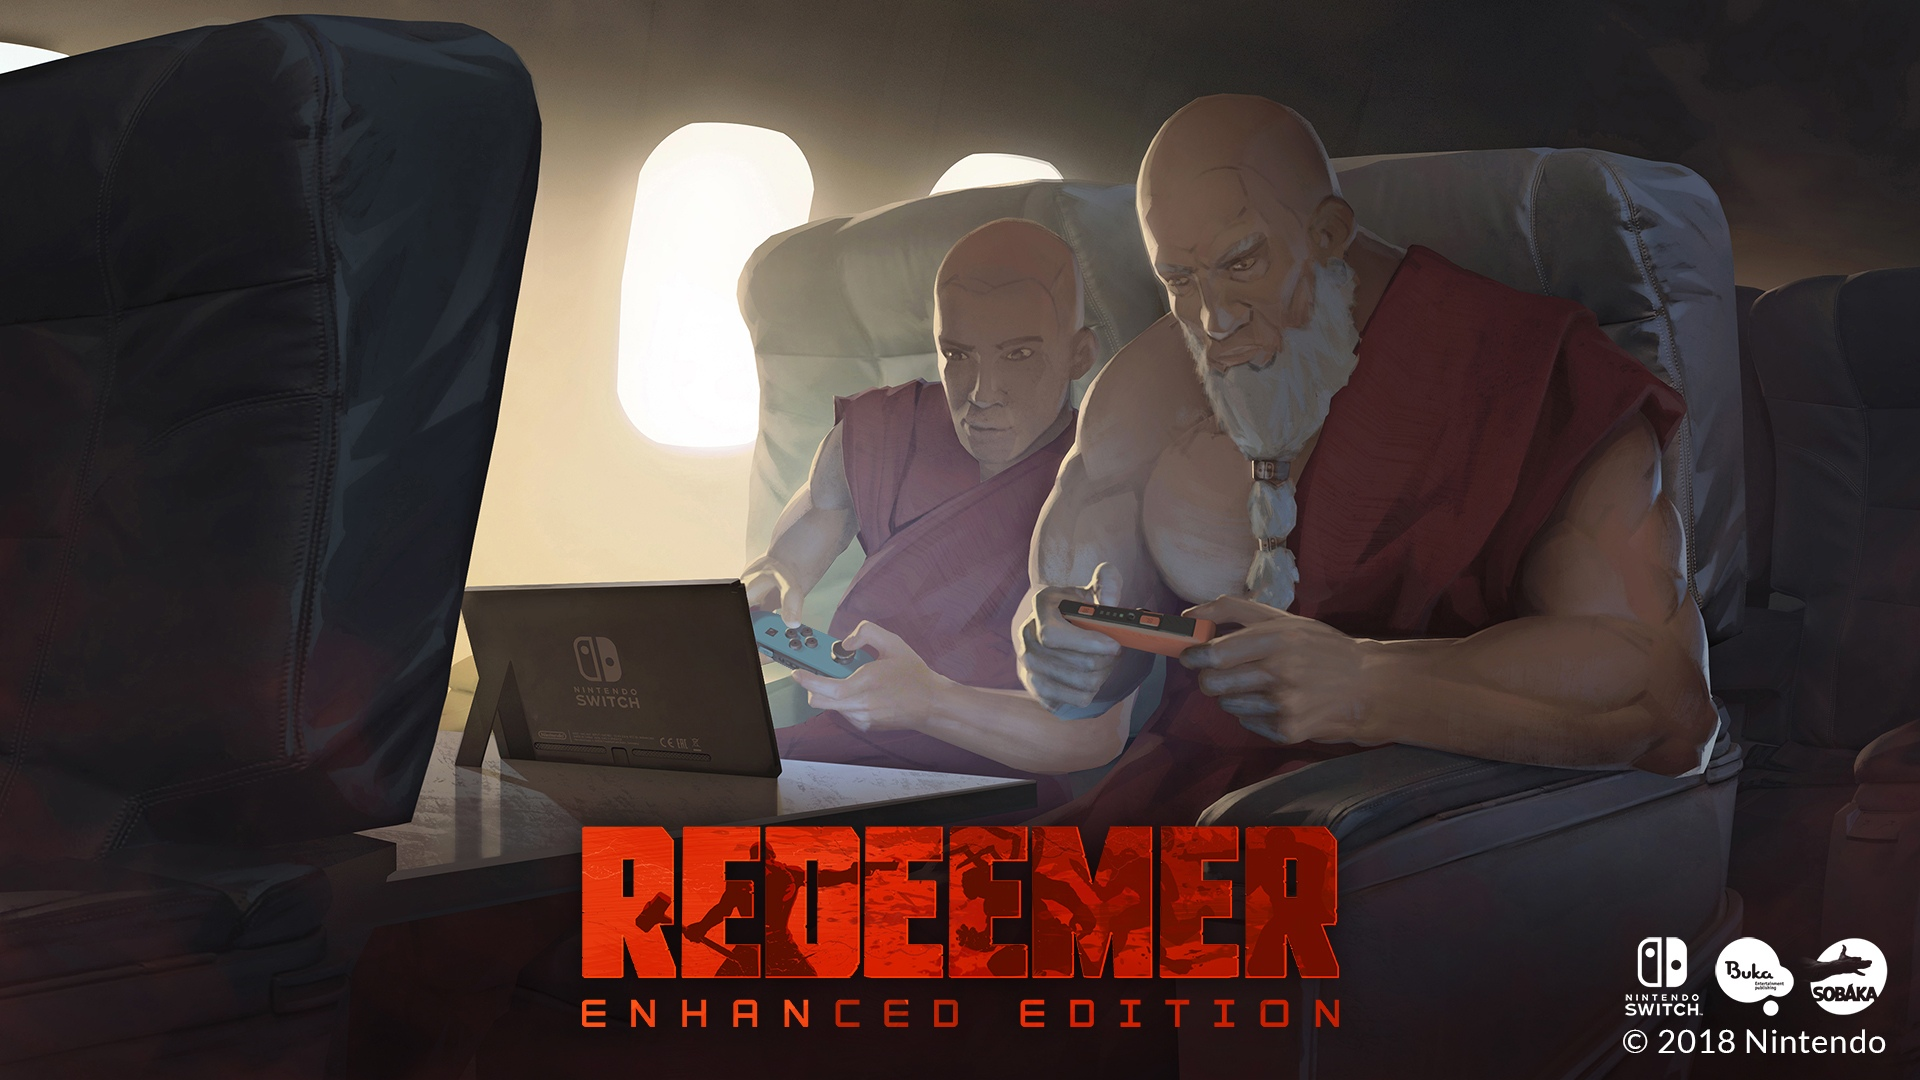 REDEEMER Nintendo Switch